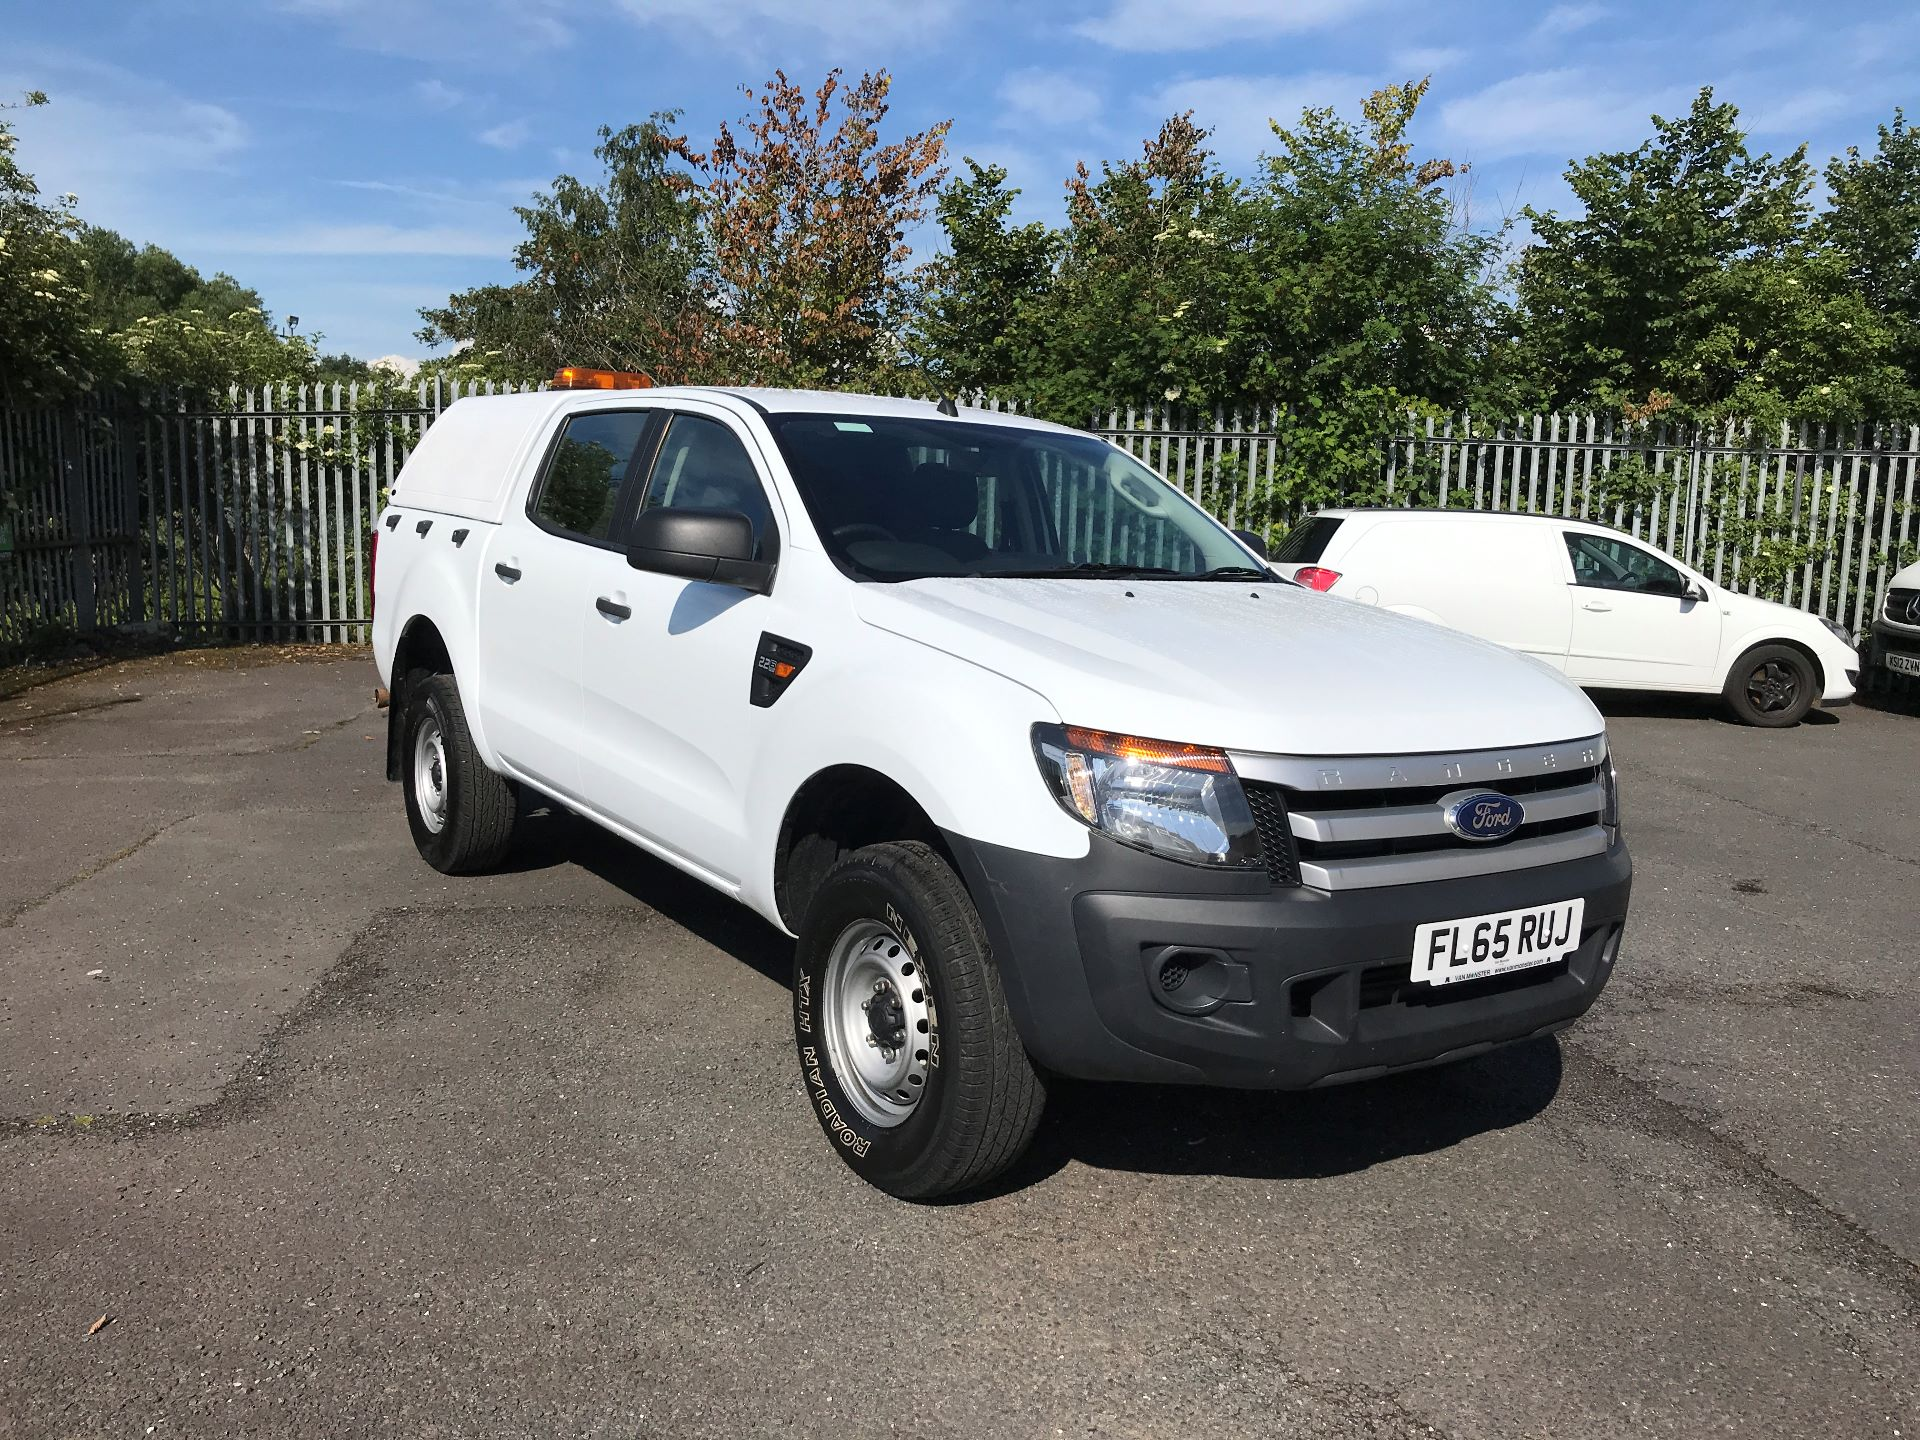 2015 Ford Ranger XL DOUBLE CAB 4X4 2.2TDCI 150PS (FL65RUJ)